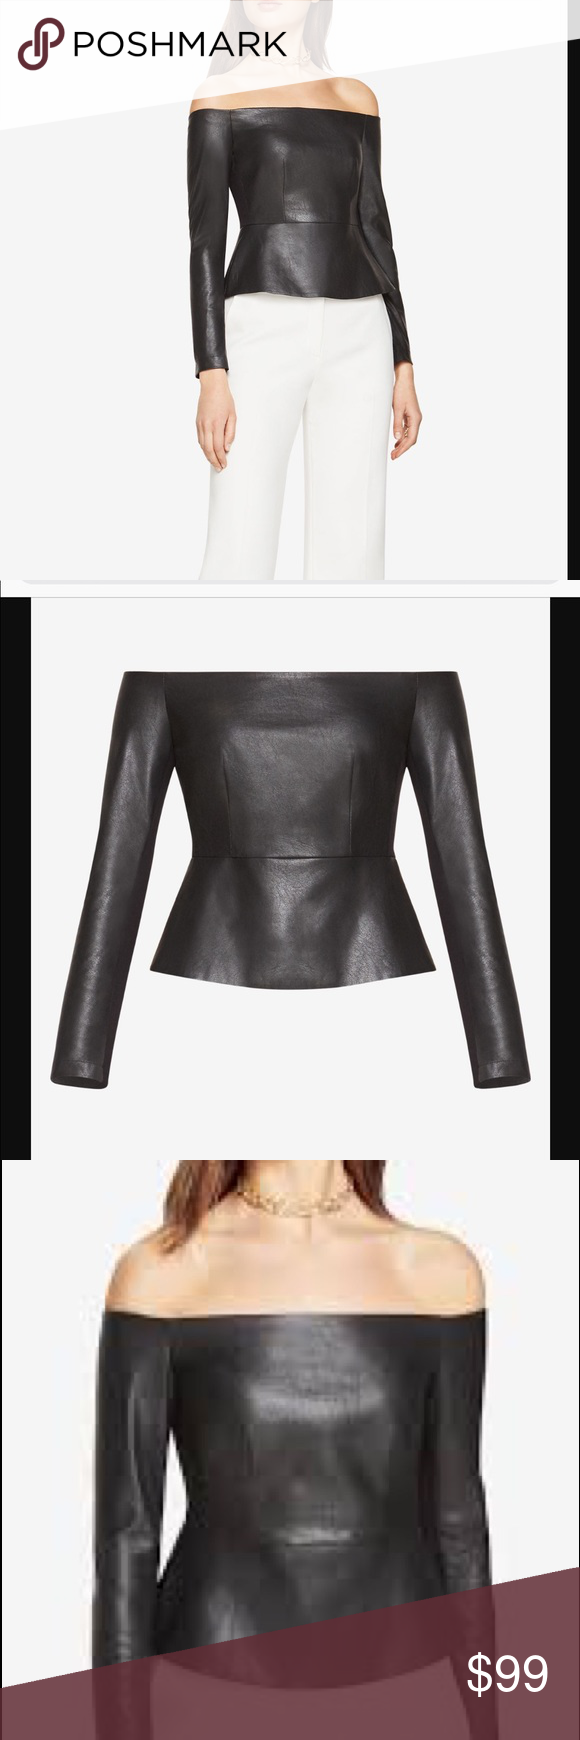 732aa748067b14 New with tags! BCBG faux leather peplum top XS Brand new! Chic ...